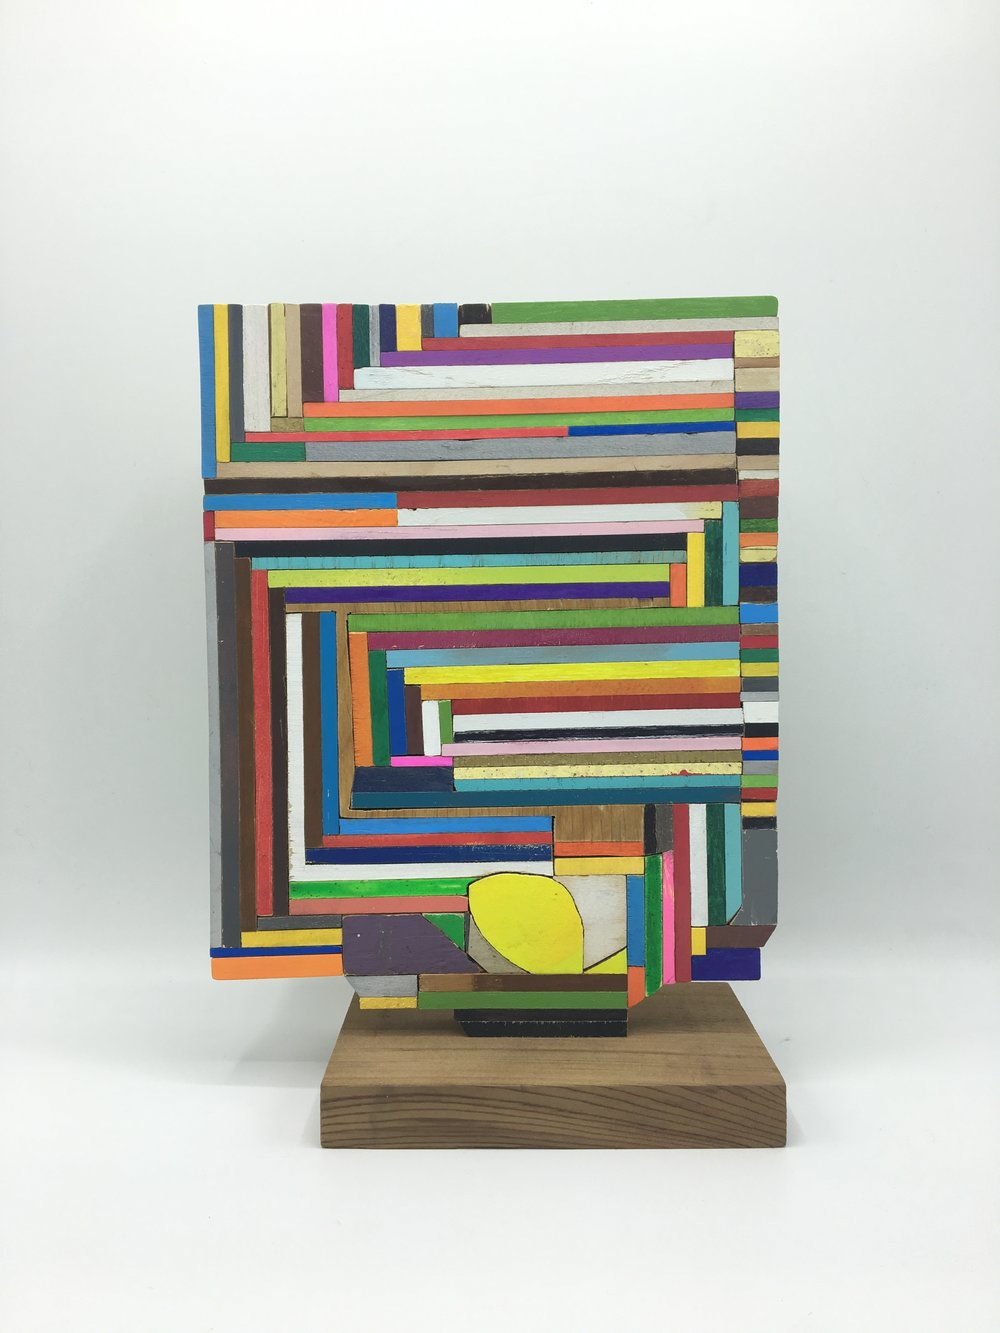 Stack, 2017 Wood, Paint, Glue 10 ½ x 7 ½ x 3 ½ in.